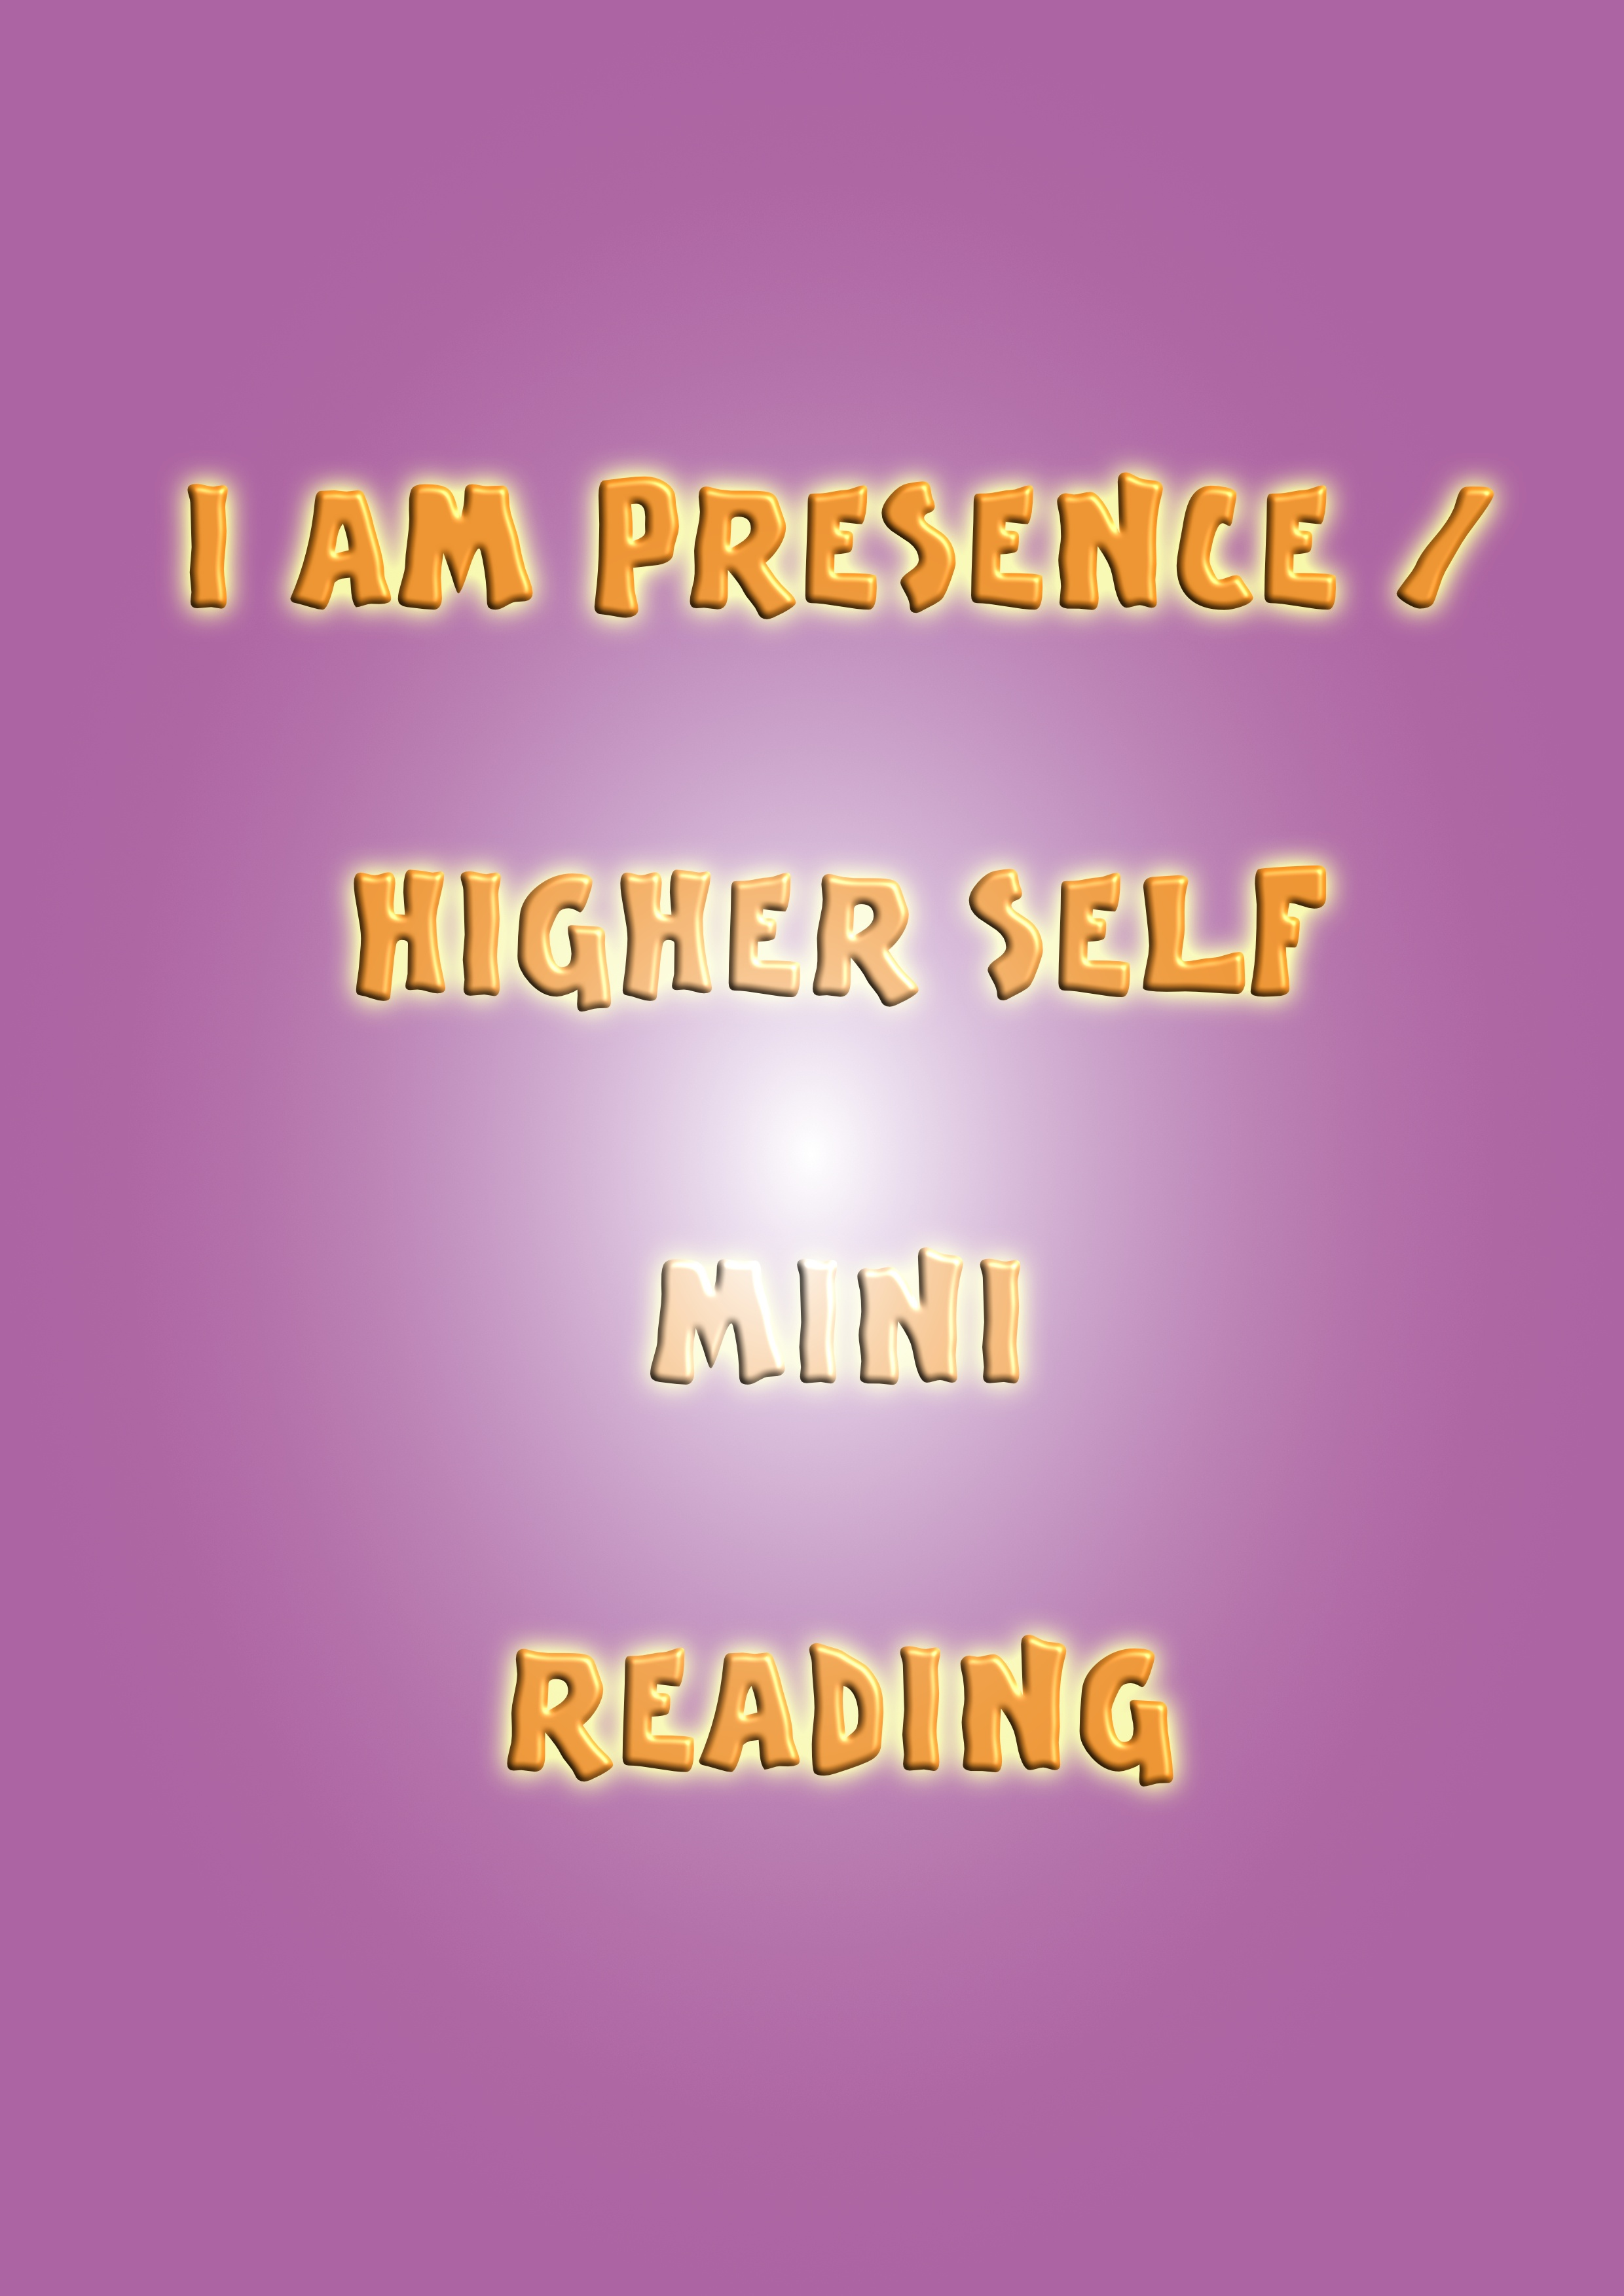 higher self mini reading